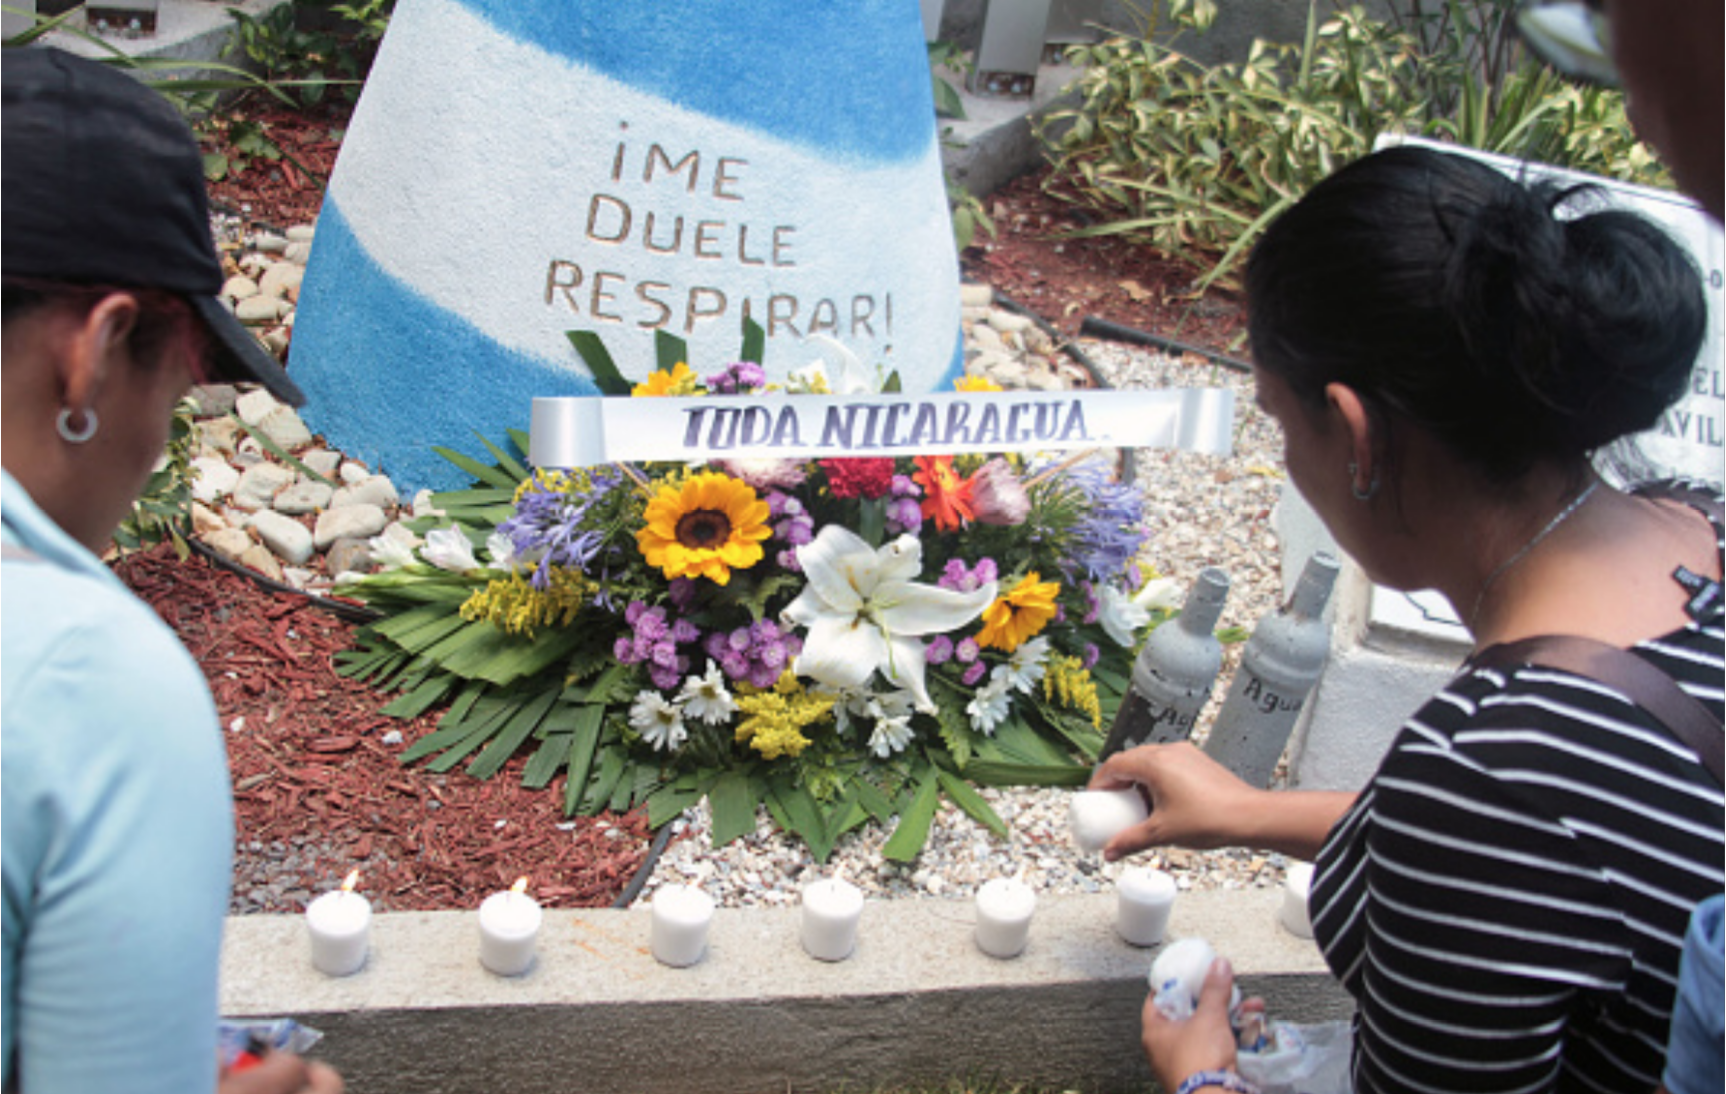 Power to the People: Between Death and Insurrection in Nicaragua